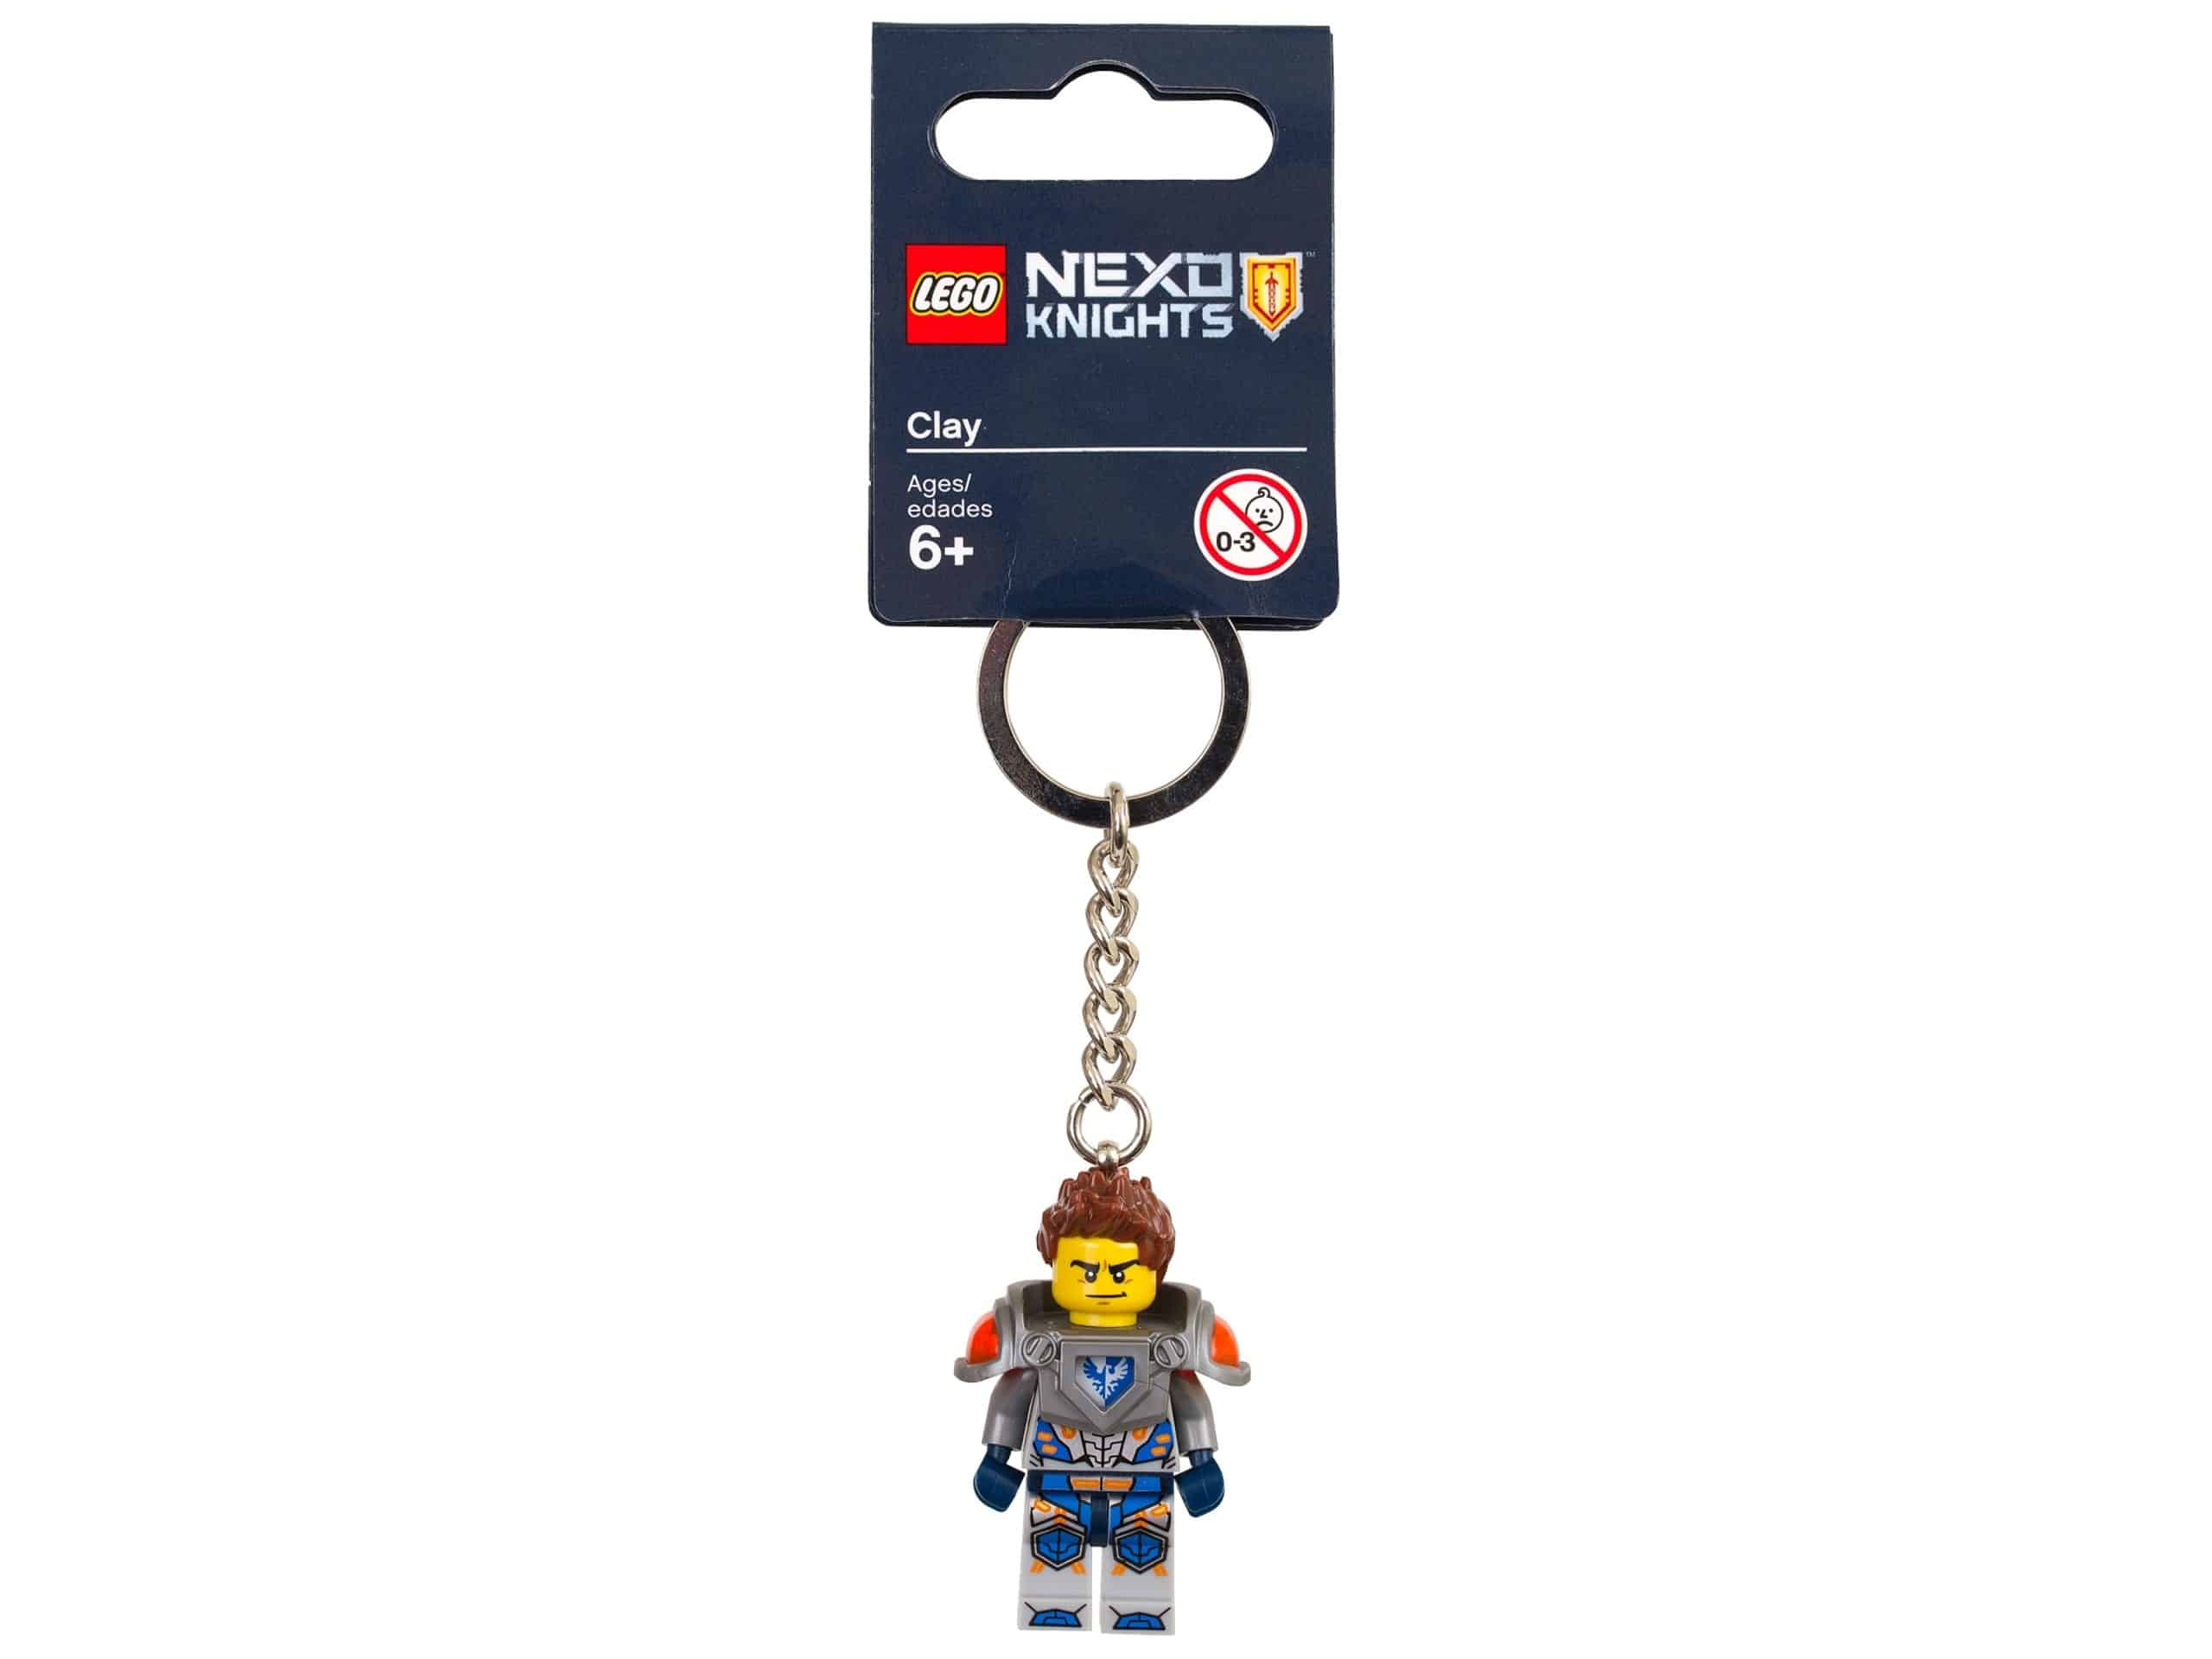 lego 853521 nexo knights clay noglering scaled